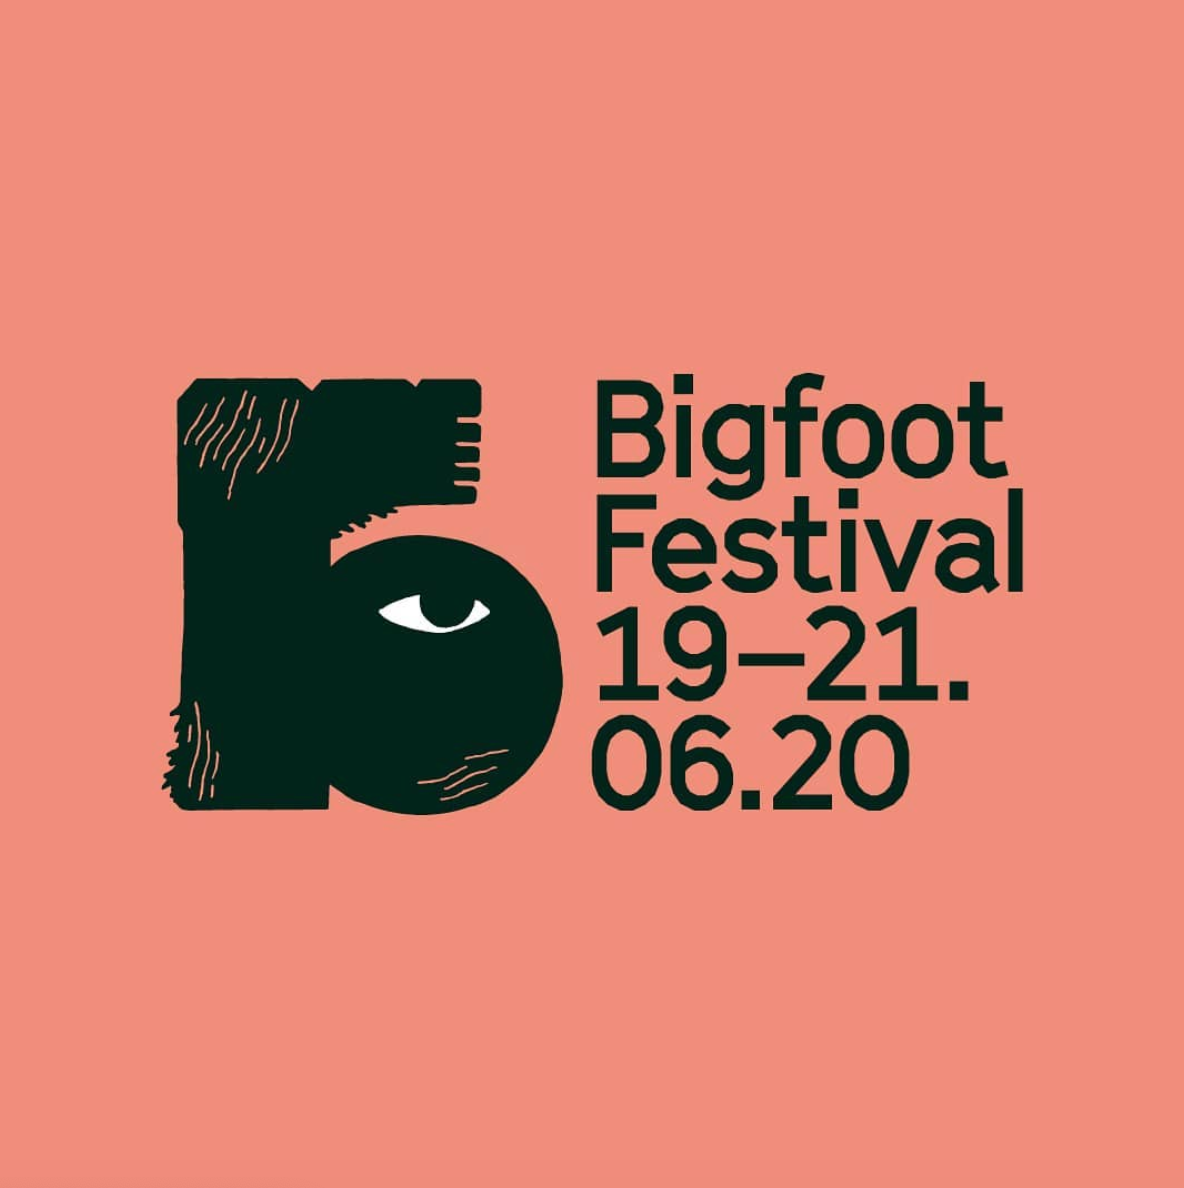 Introducing Bigfoot – a brand new festival & a taste of the good life